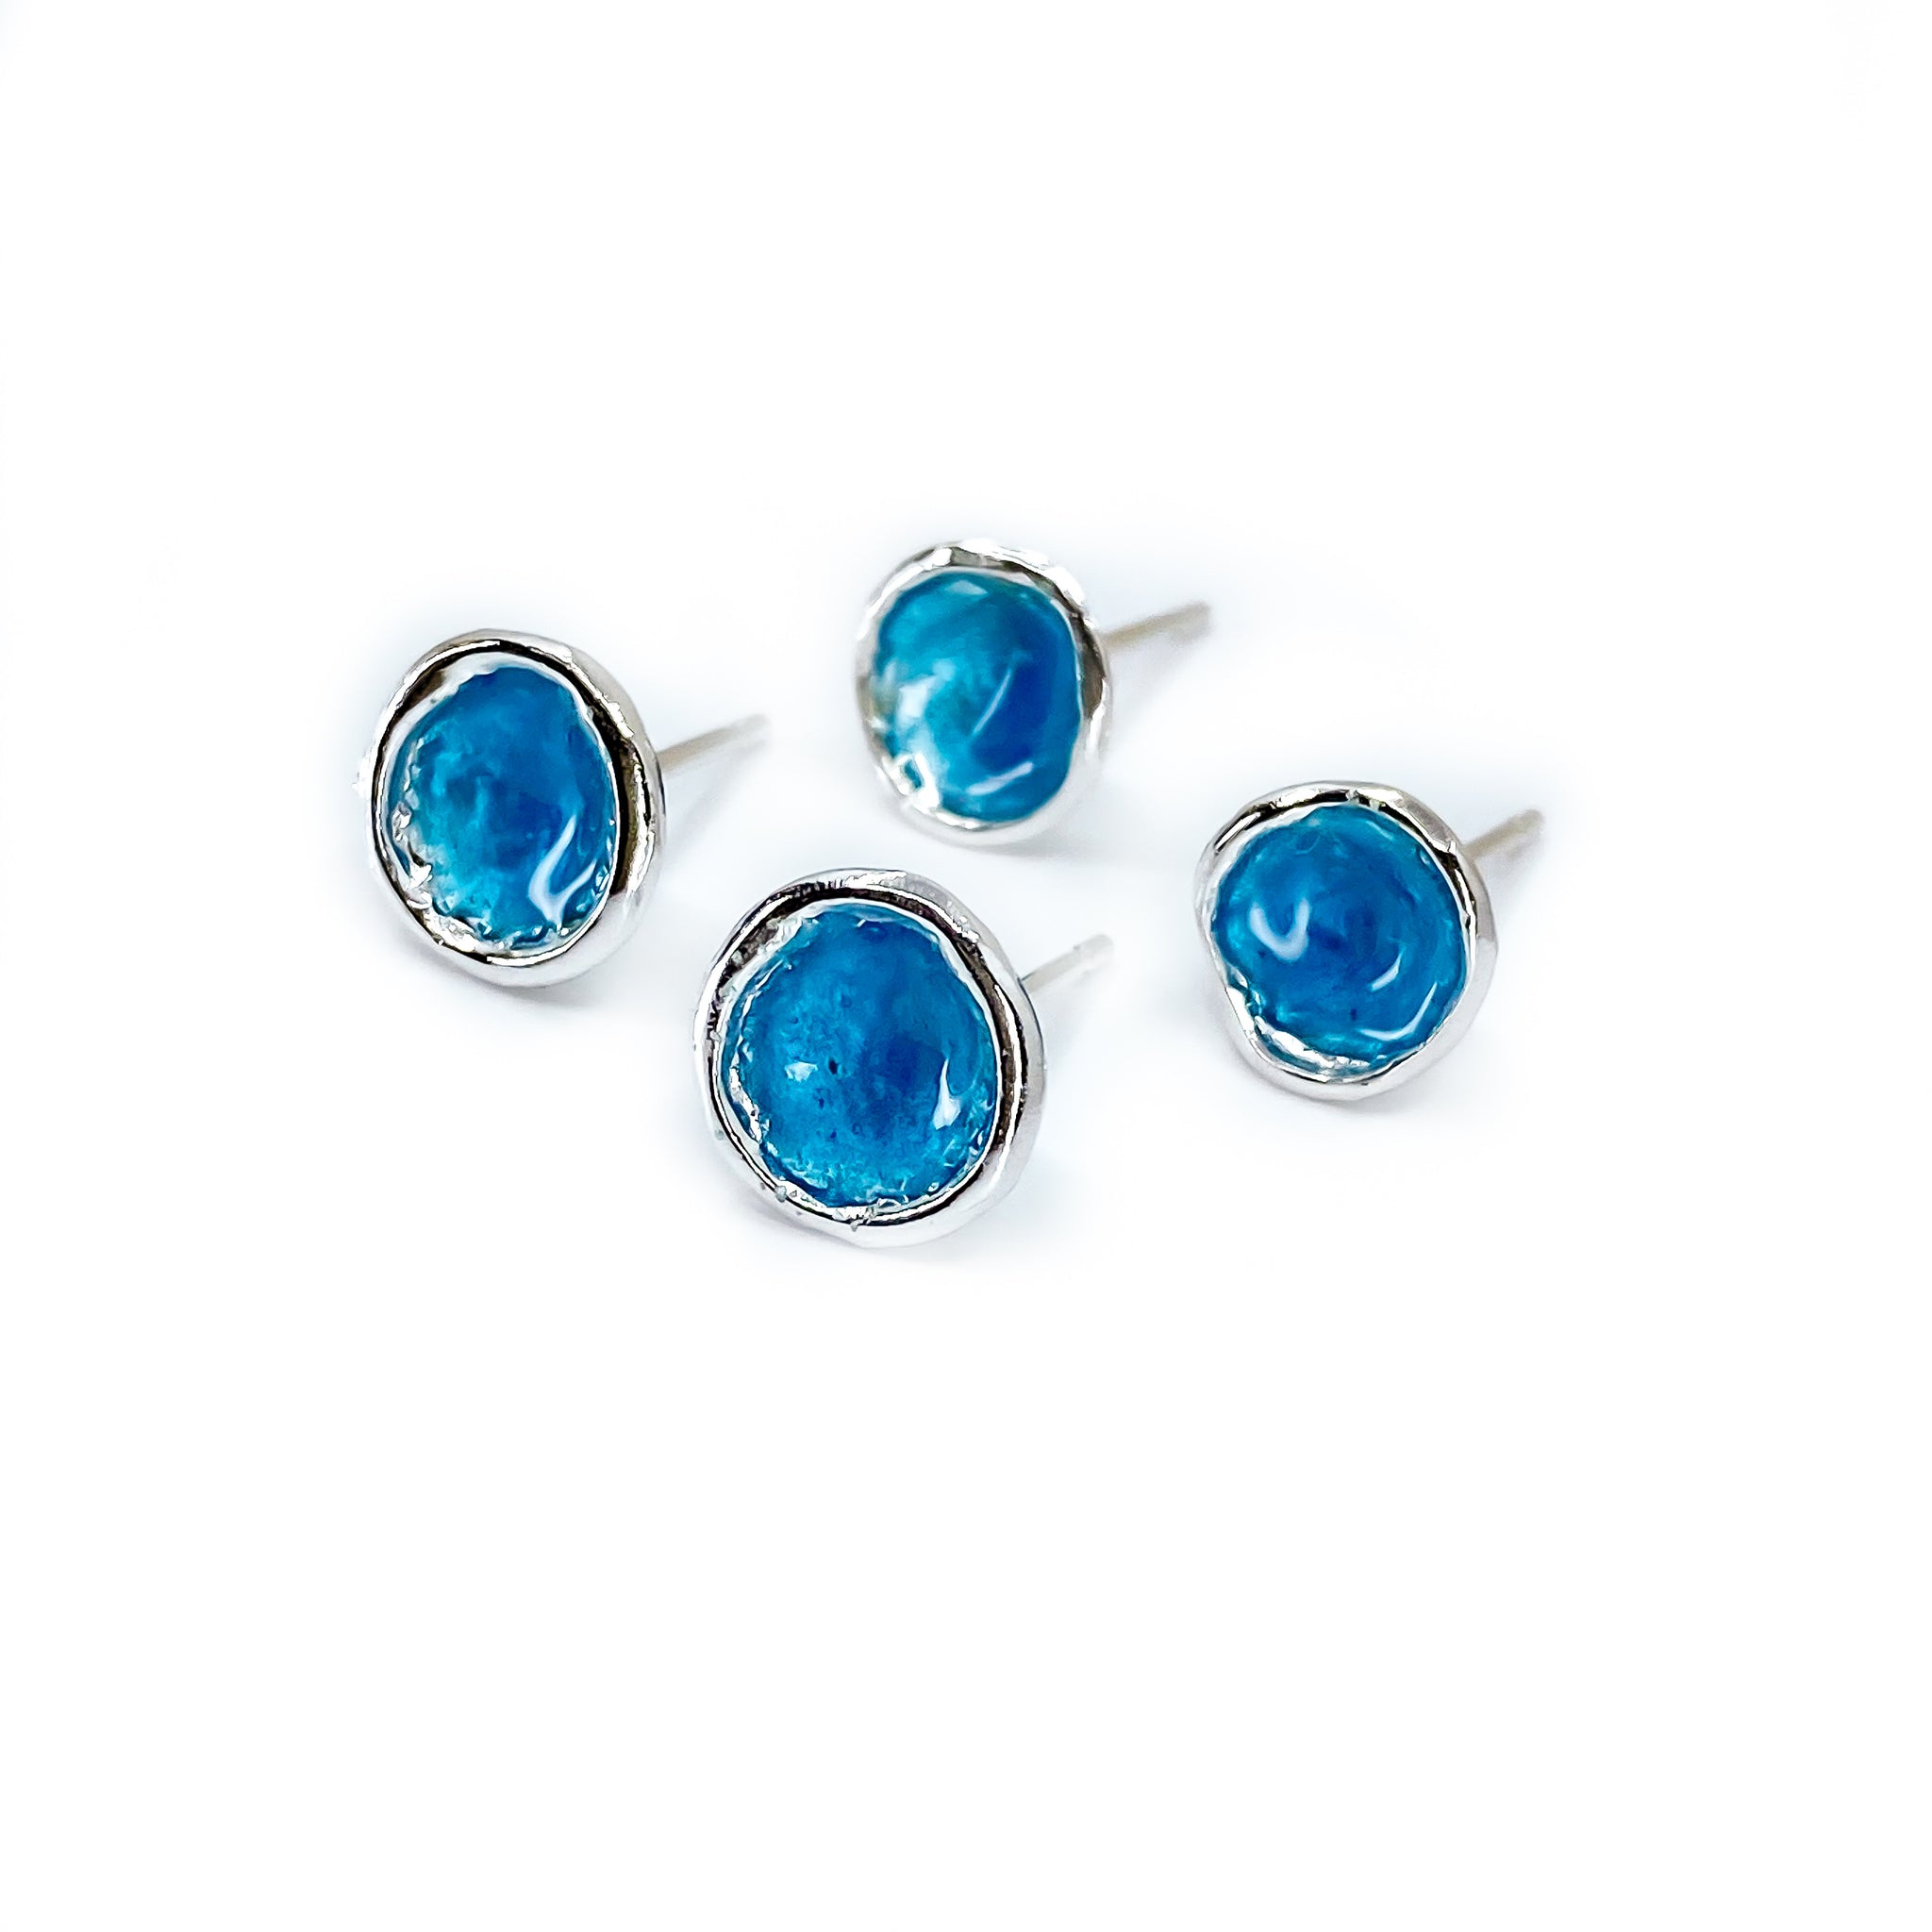 'Carrick bay' Blue Enamel Silver Droplet Stud Earrings